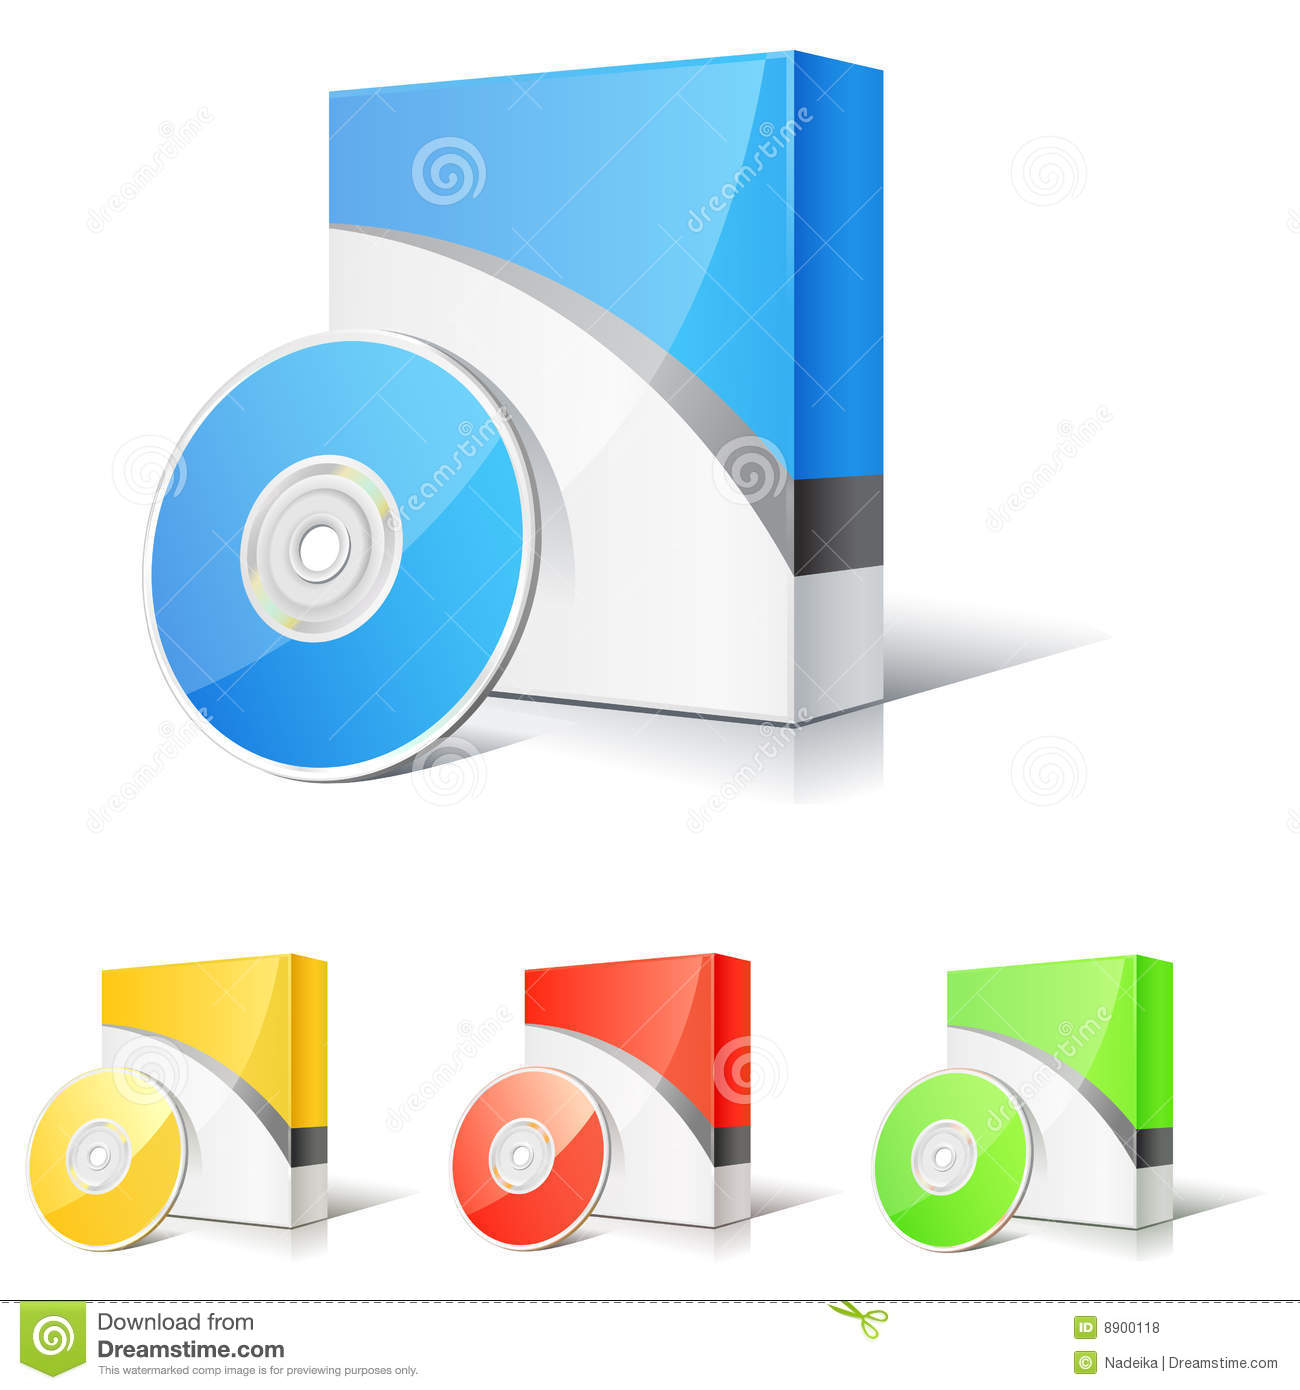 Software box royalty free stock photos image 8900118 Vector image software